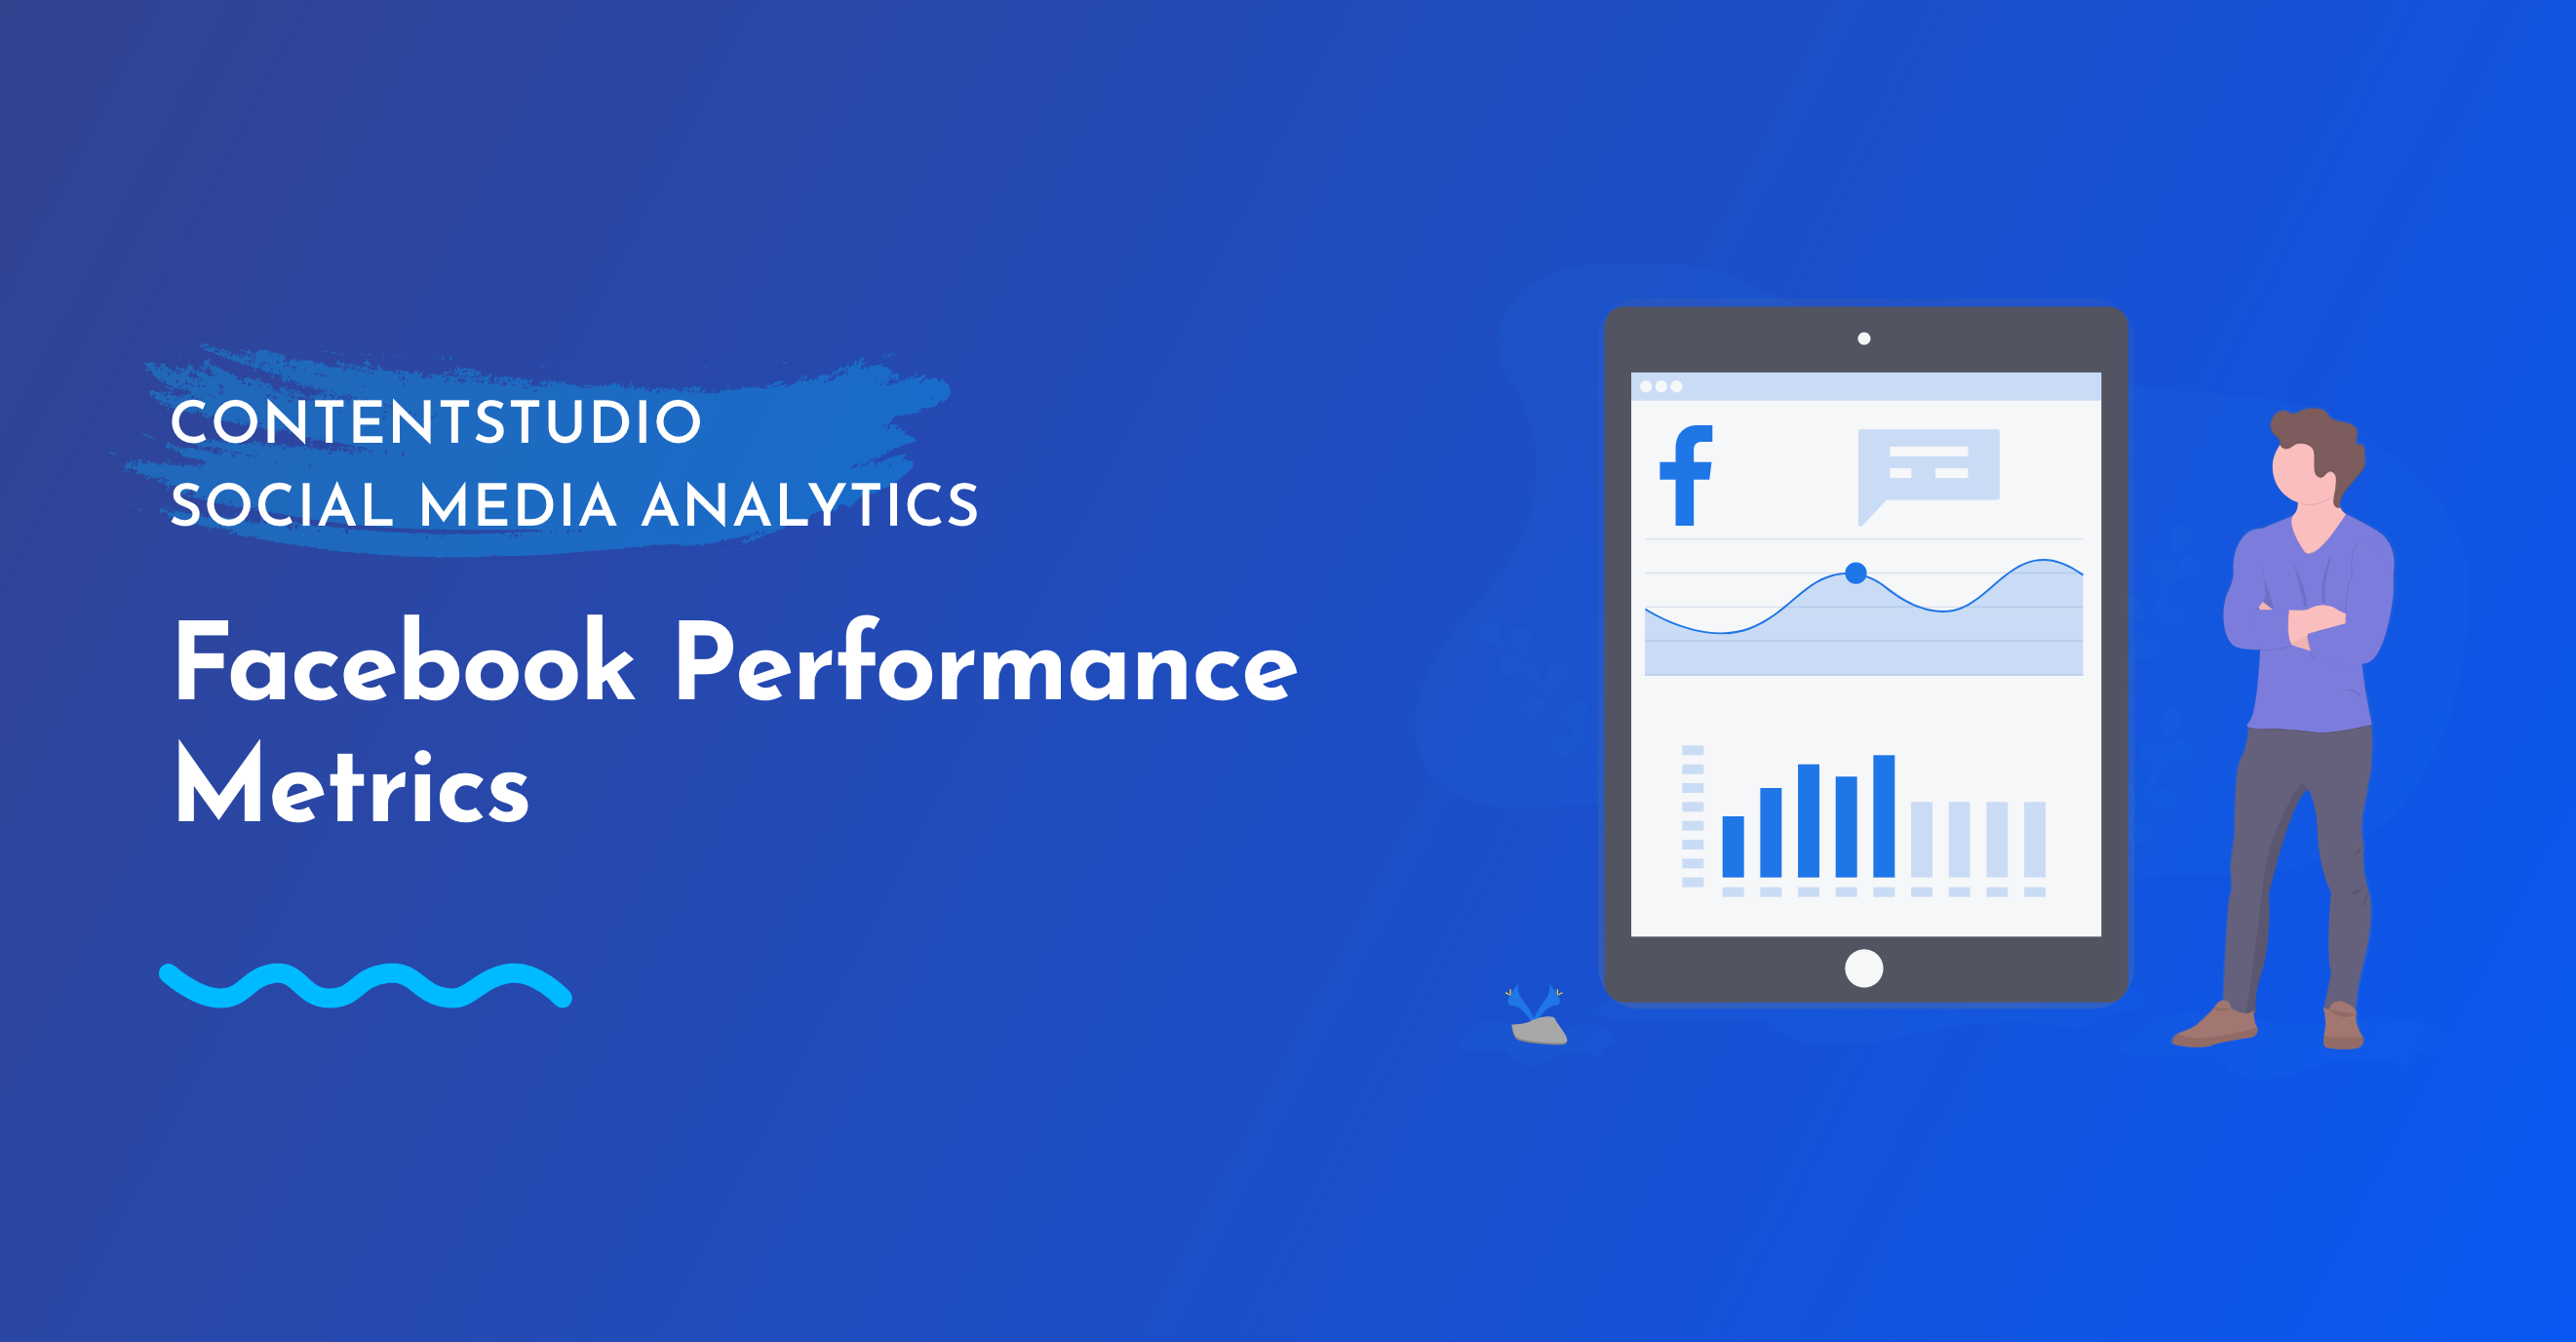 Facebook Performance Metrics - Social Media Analytics from ContentStudio